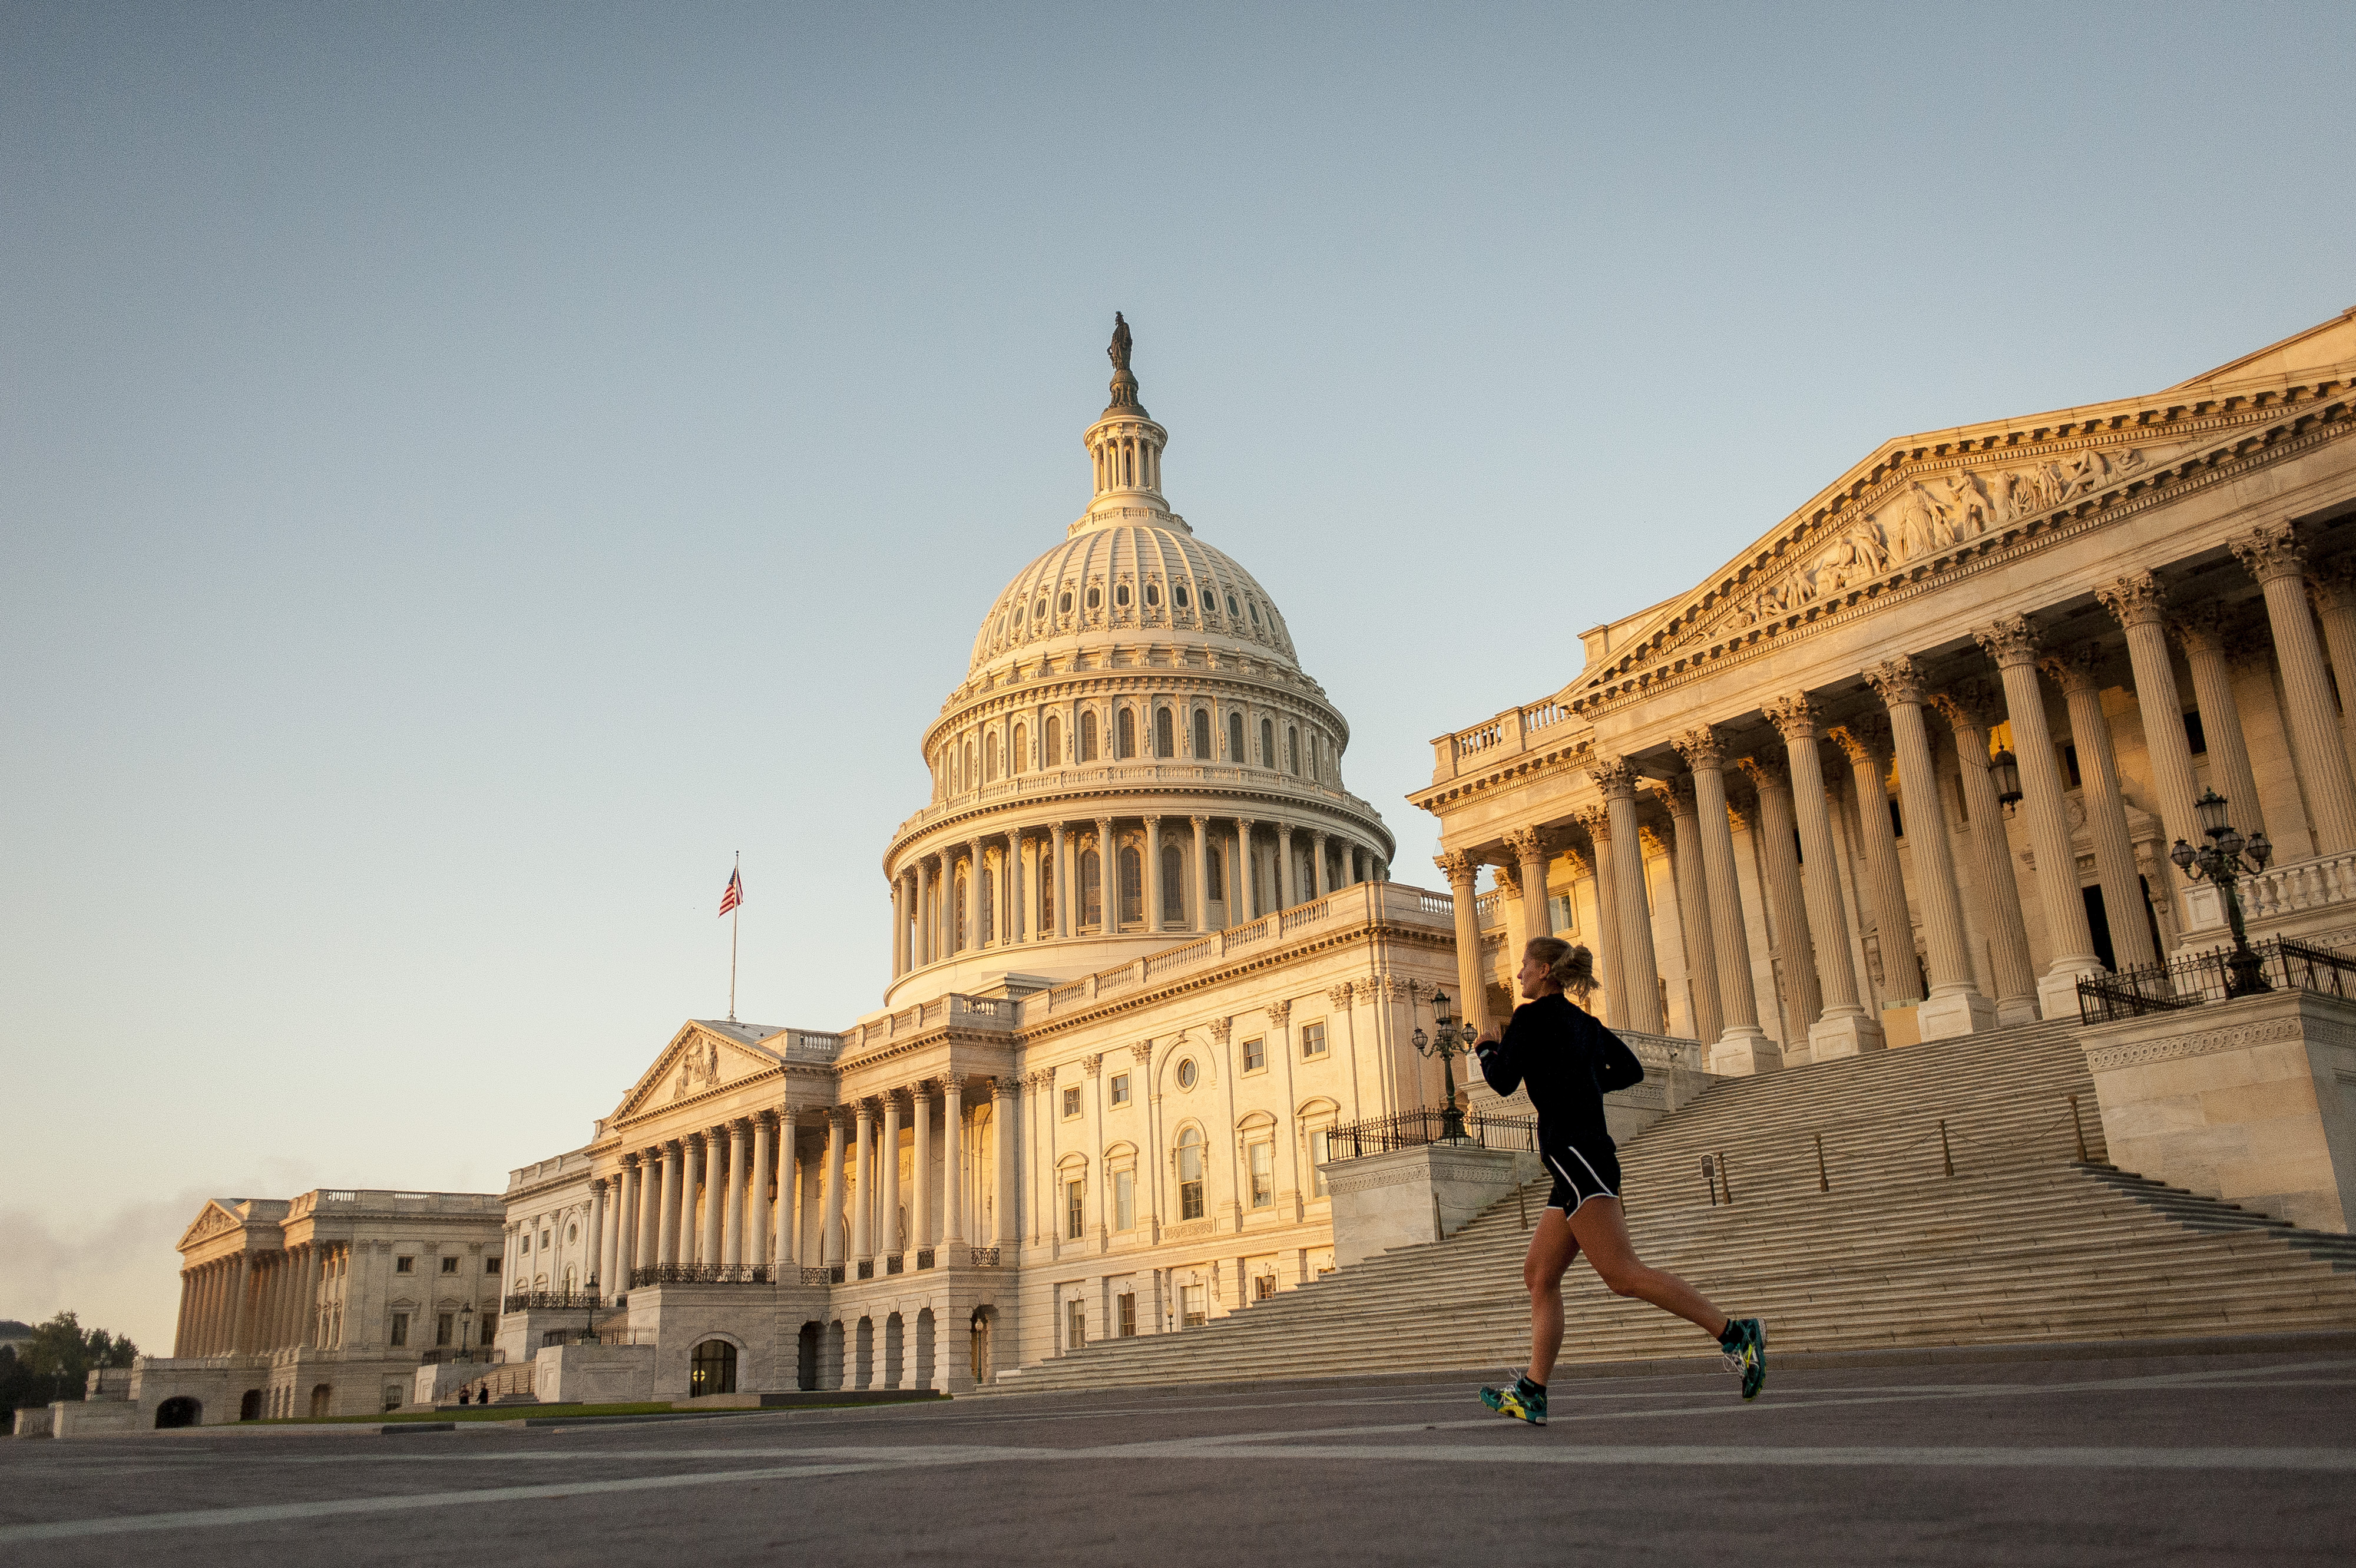 A jogger runs past the United States Capitol building at sunrise in Washington, D.C., U.S., on Tuesday, Oct. 15, 2013.